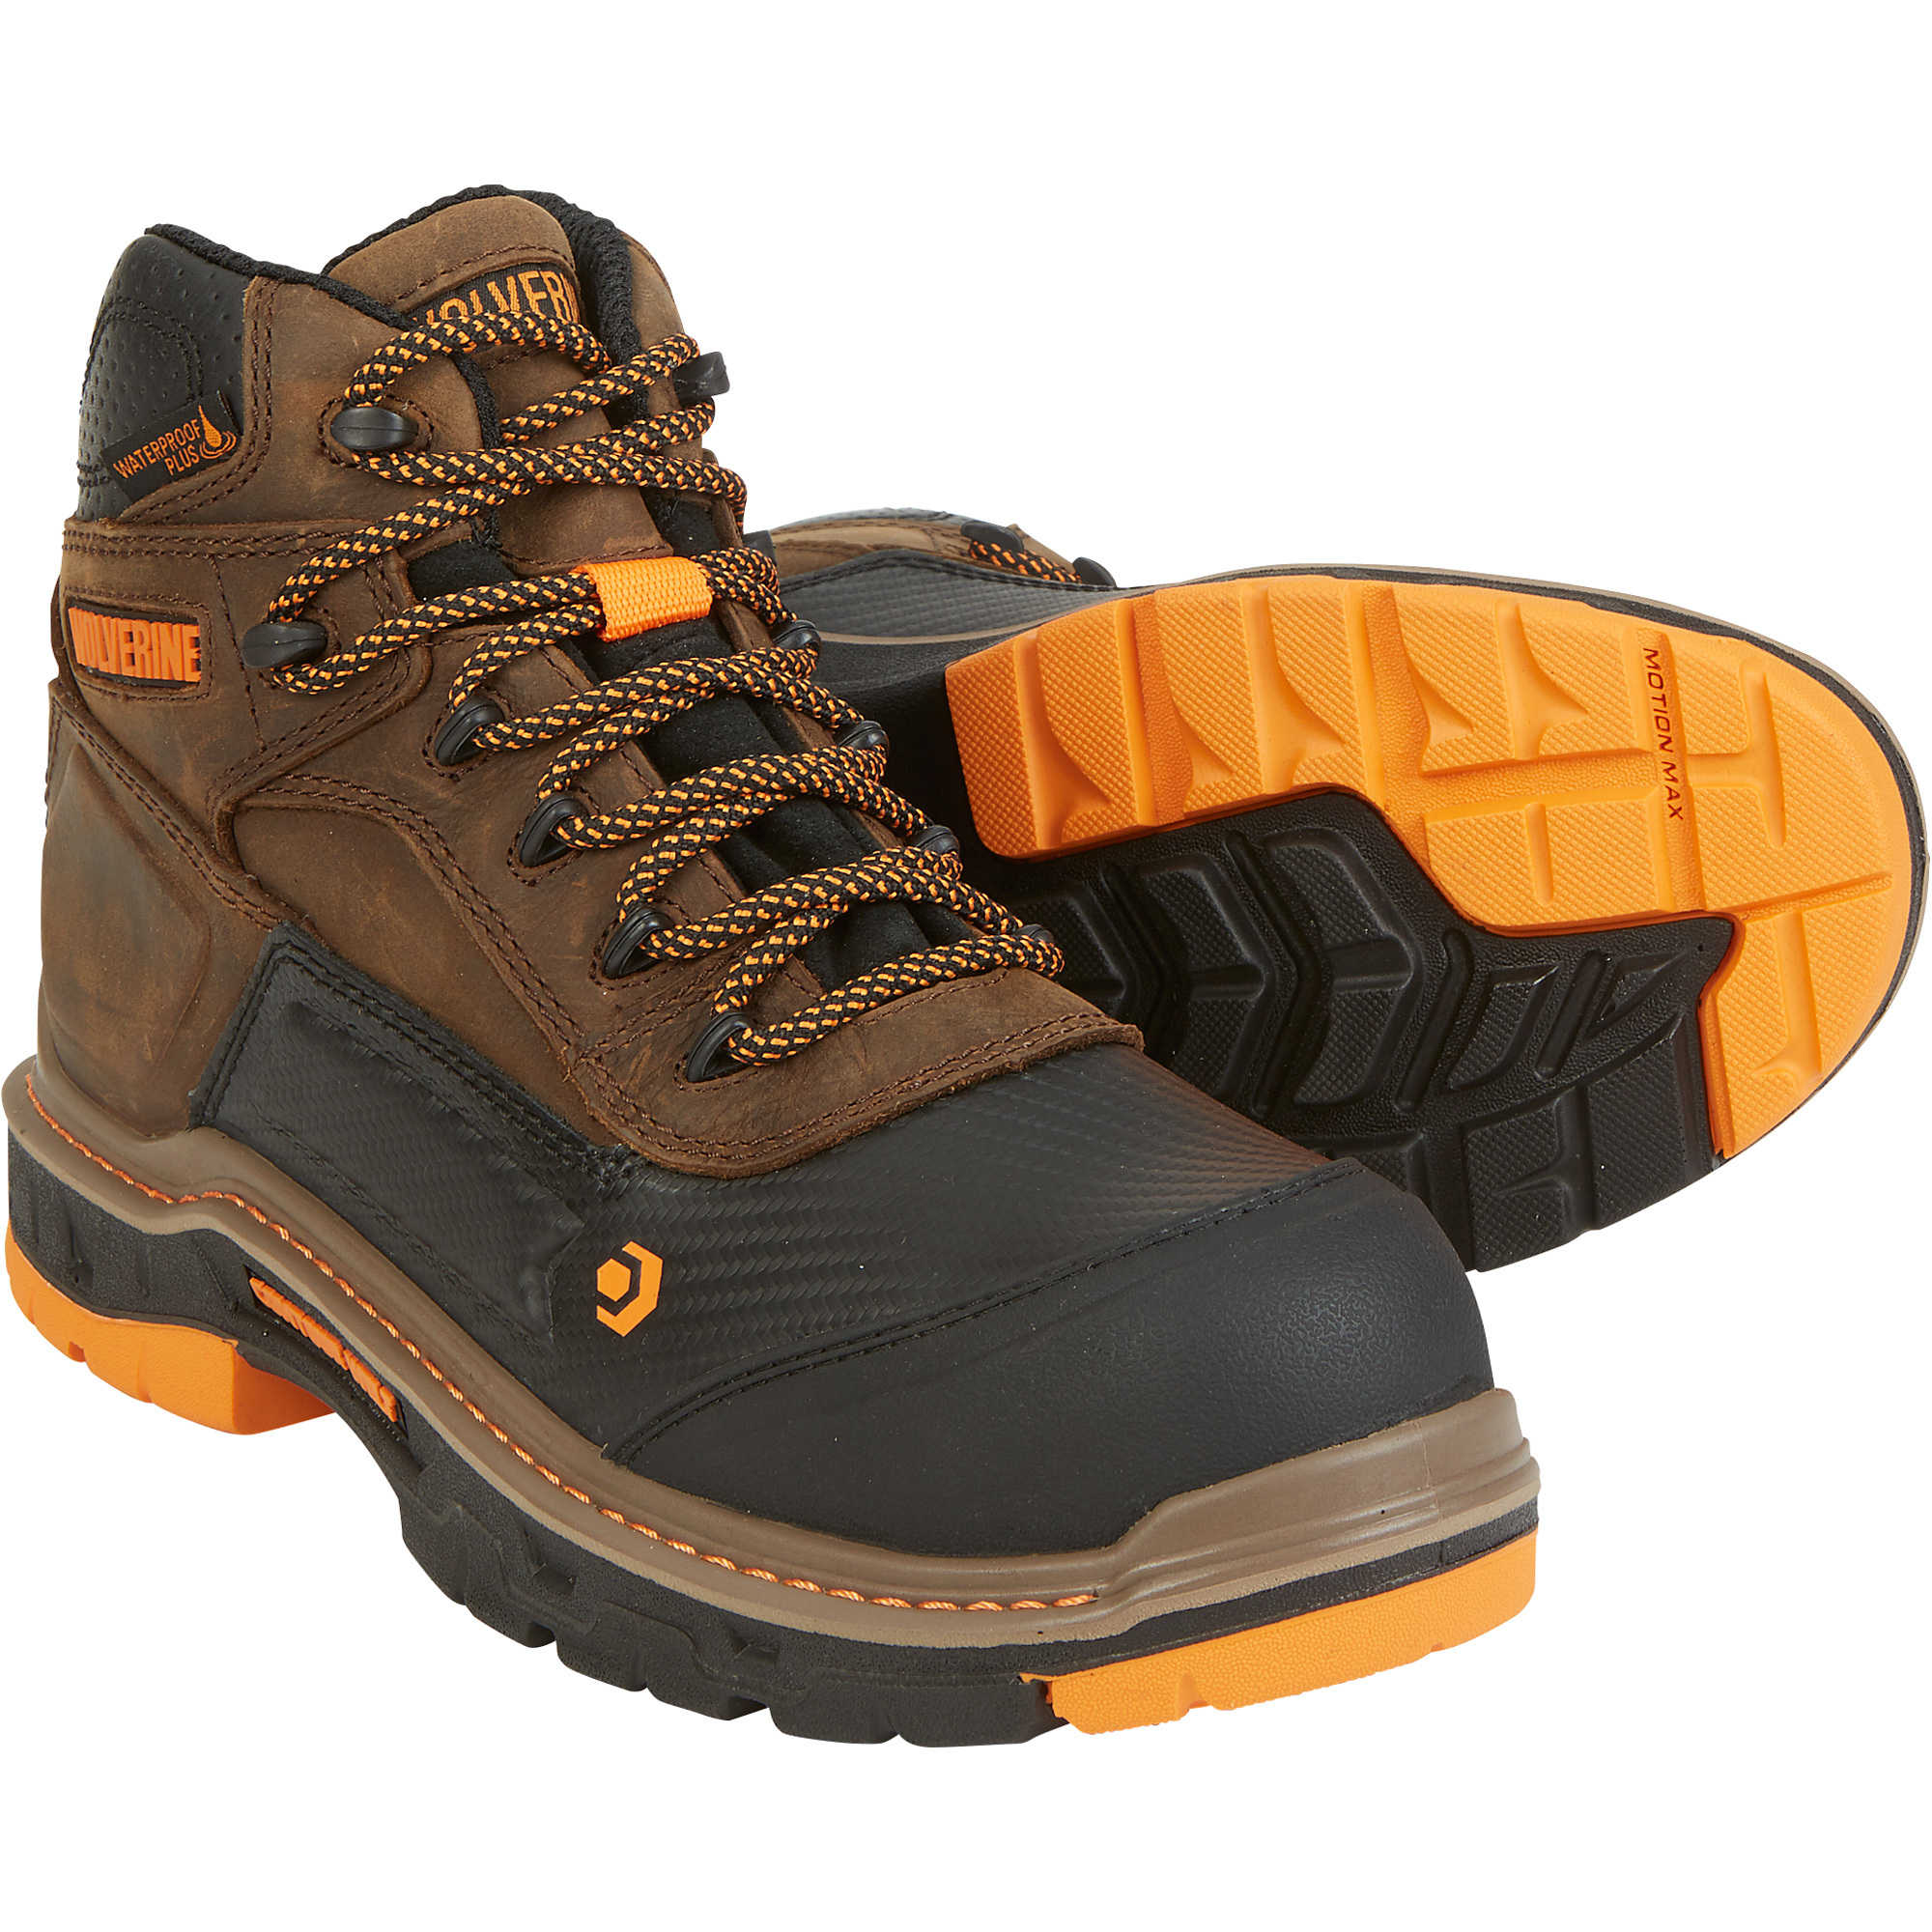 1ad365d1e7e Wolverine Men's Overpass 6in. Waterproof Work Boots, CarbonMAX Safety Toe —  Dark Brown, Size 9, Model# W10717